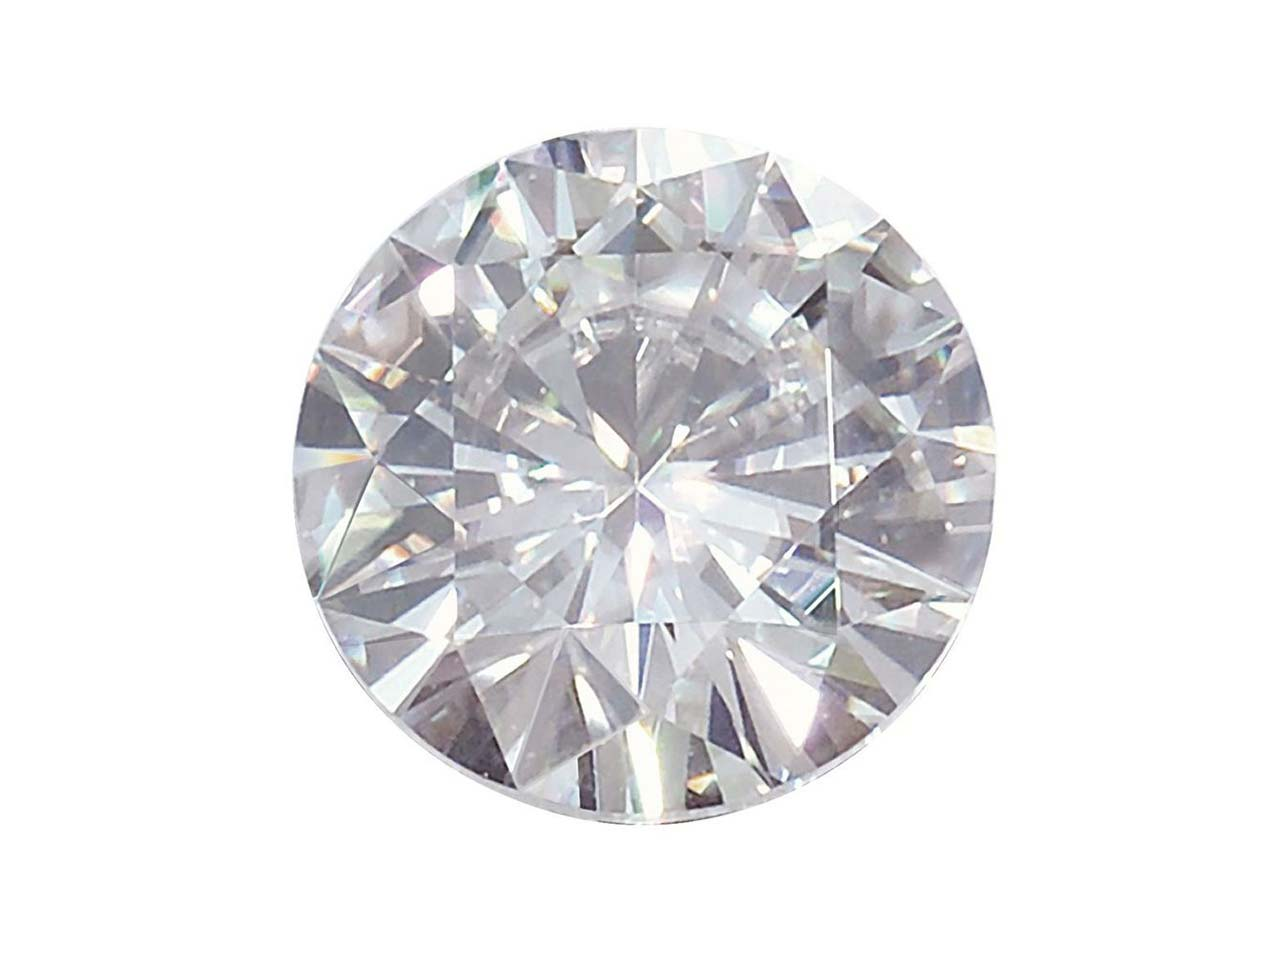 Moissanite, Round 6.5mm 0.88cts,   Diamond Equivalent 1.00cts, Very   Good Quality